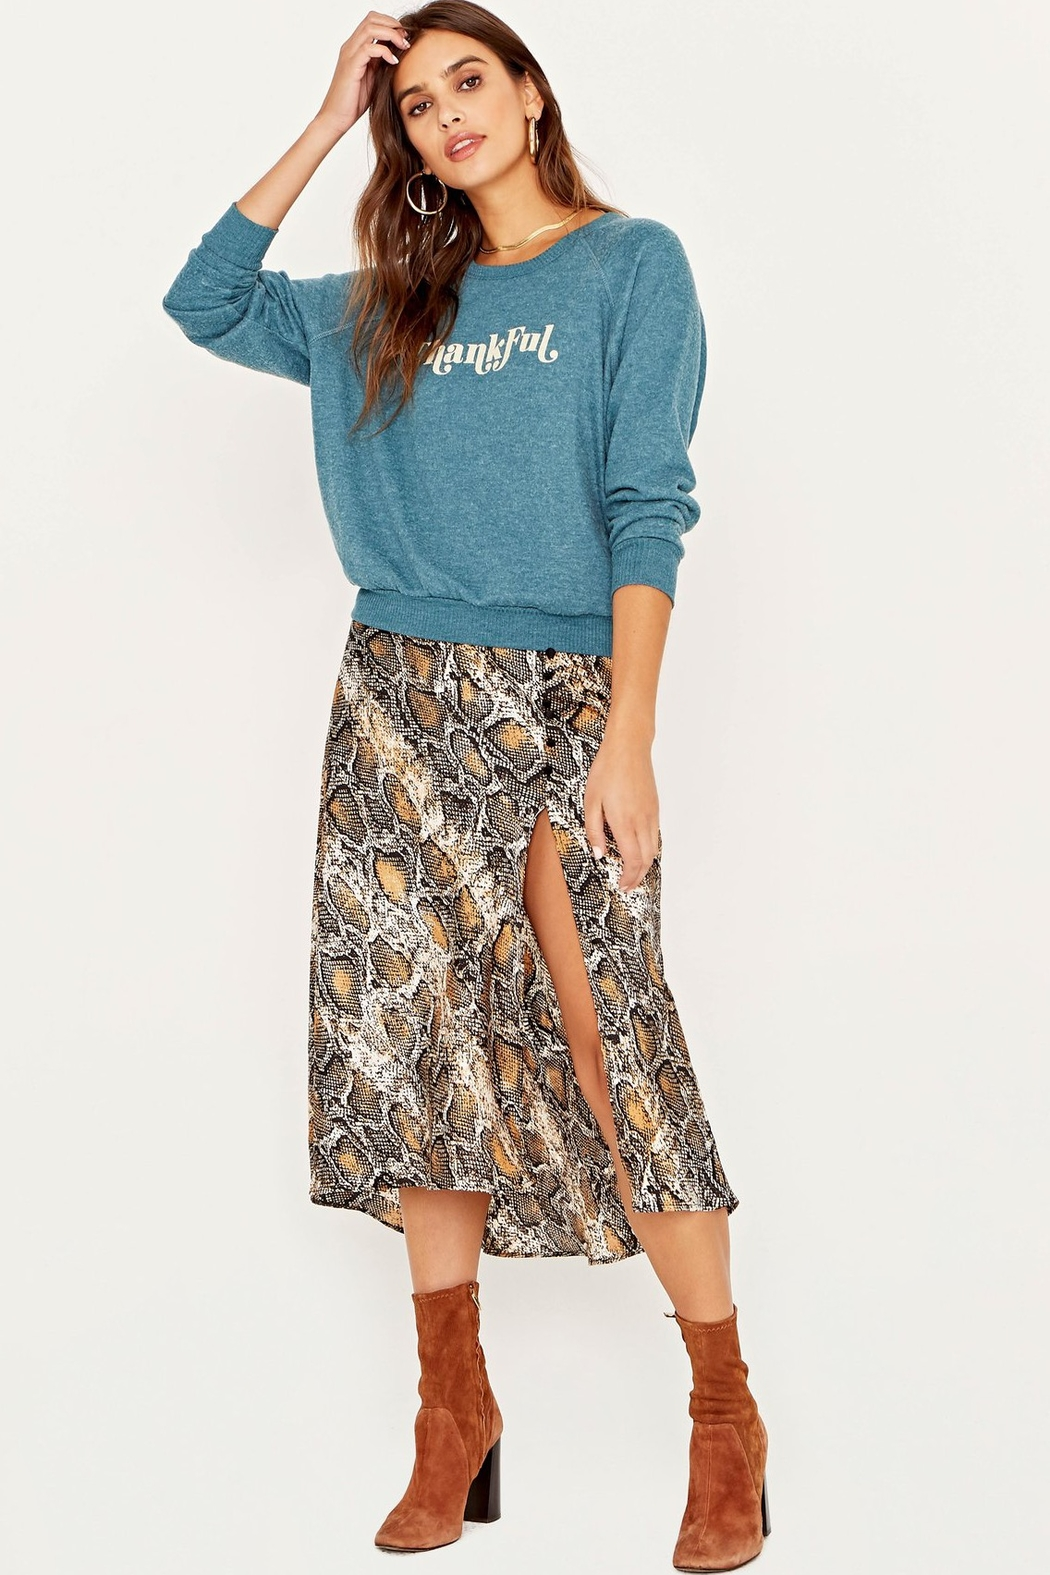 Project Social T Thankful Cozy Pullover Sweater - Front Cropped Image